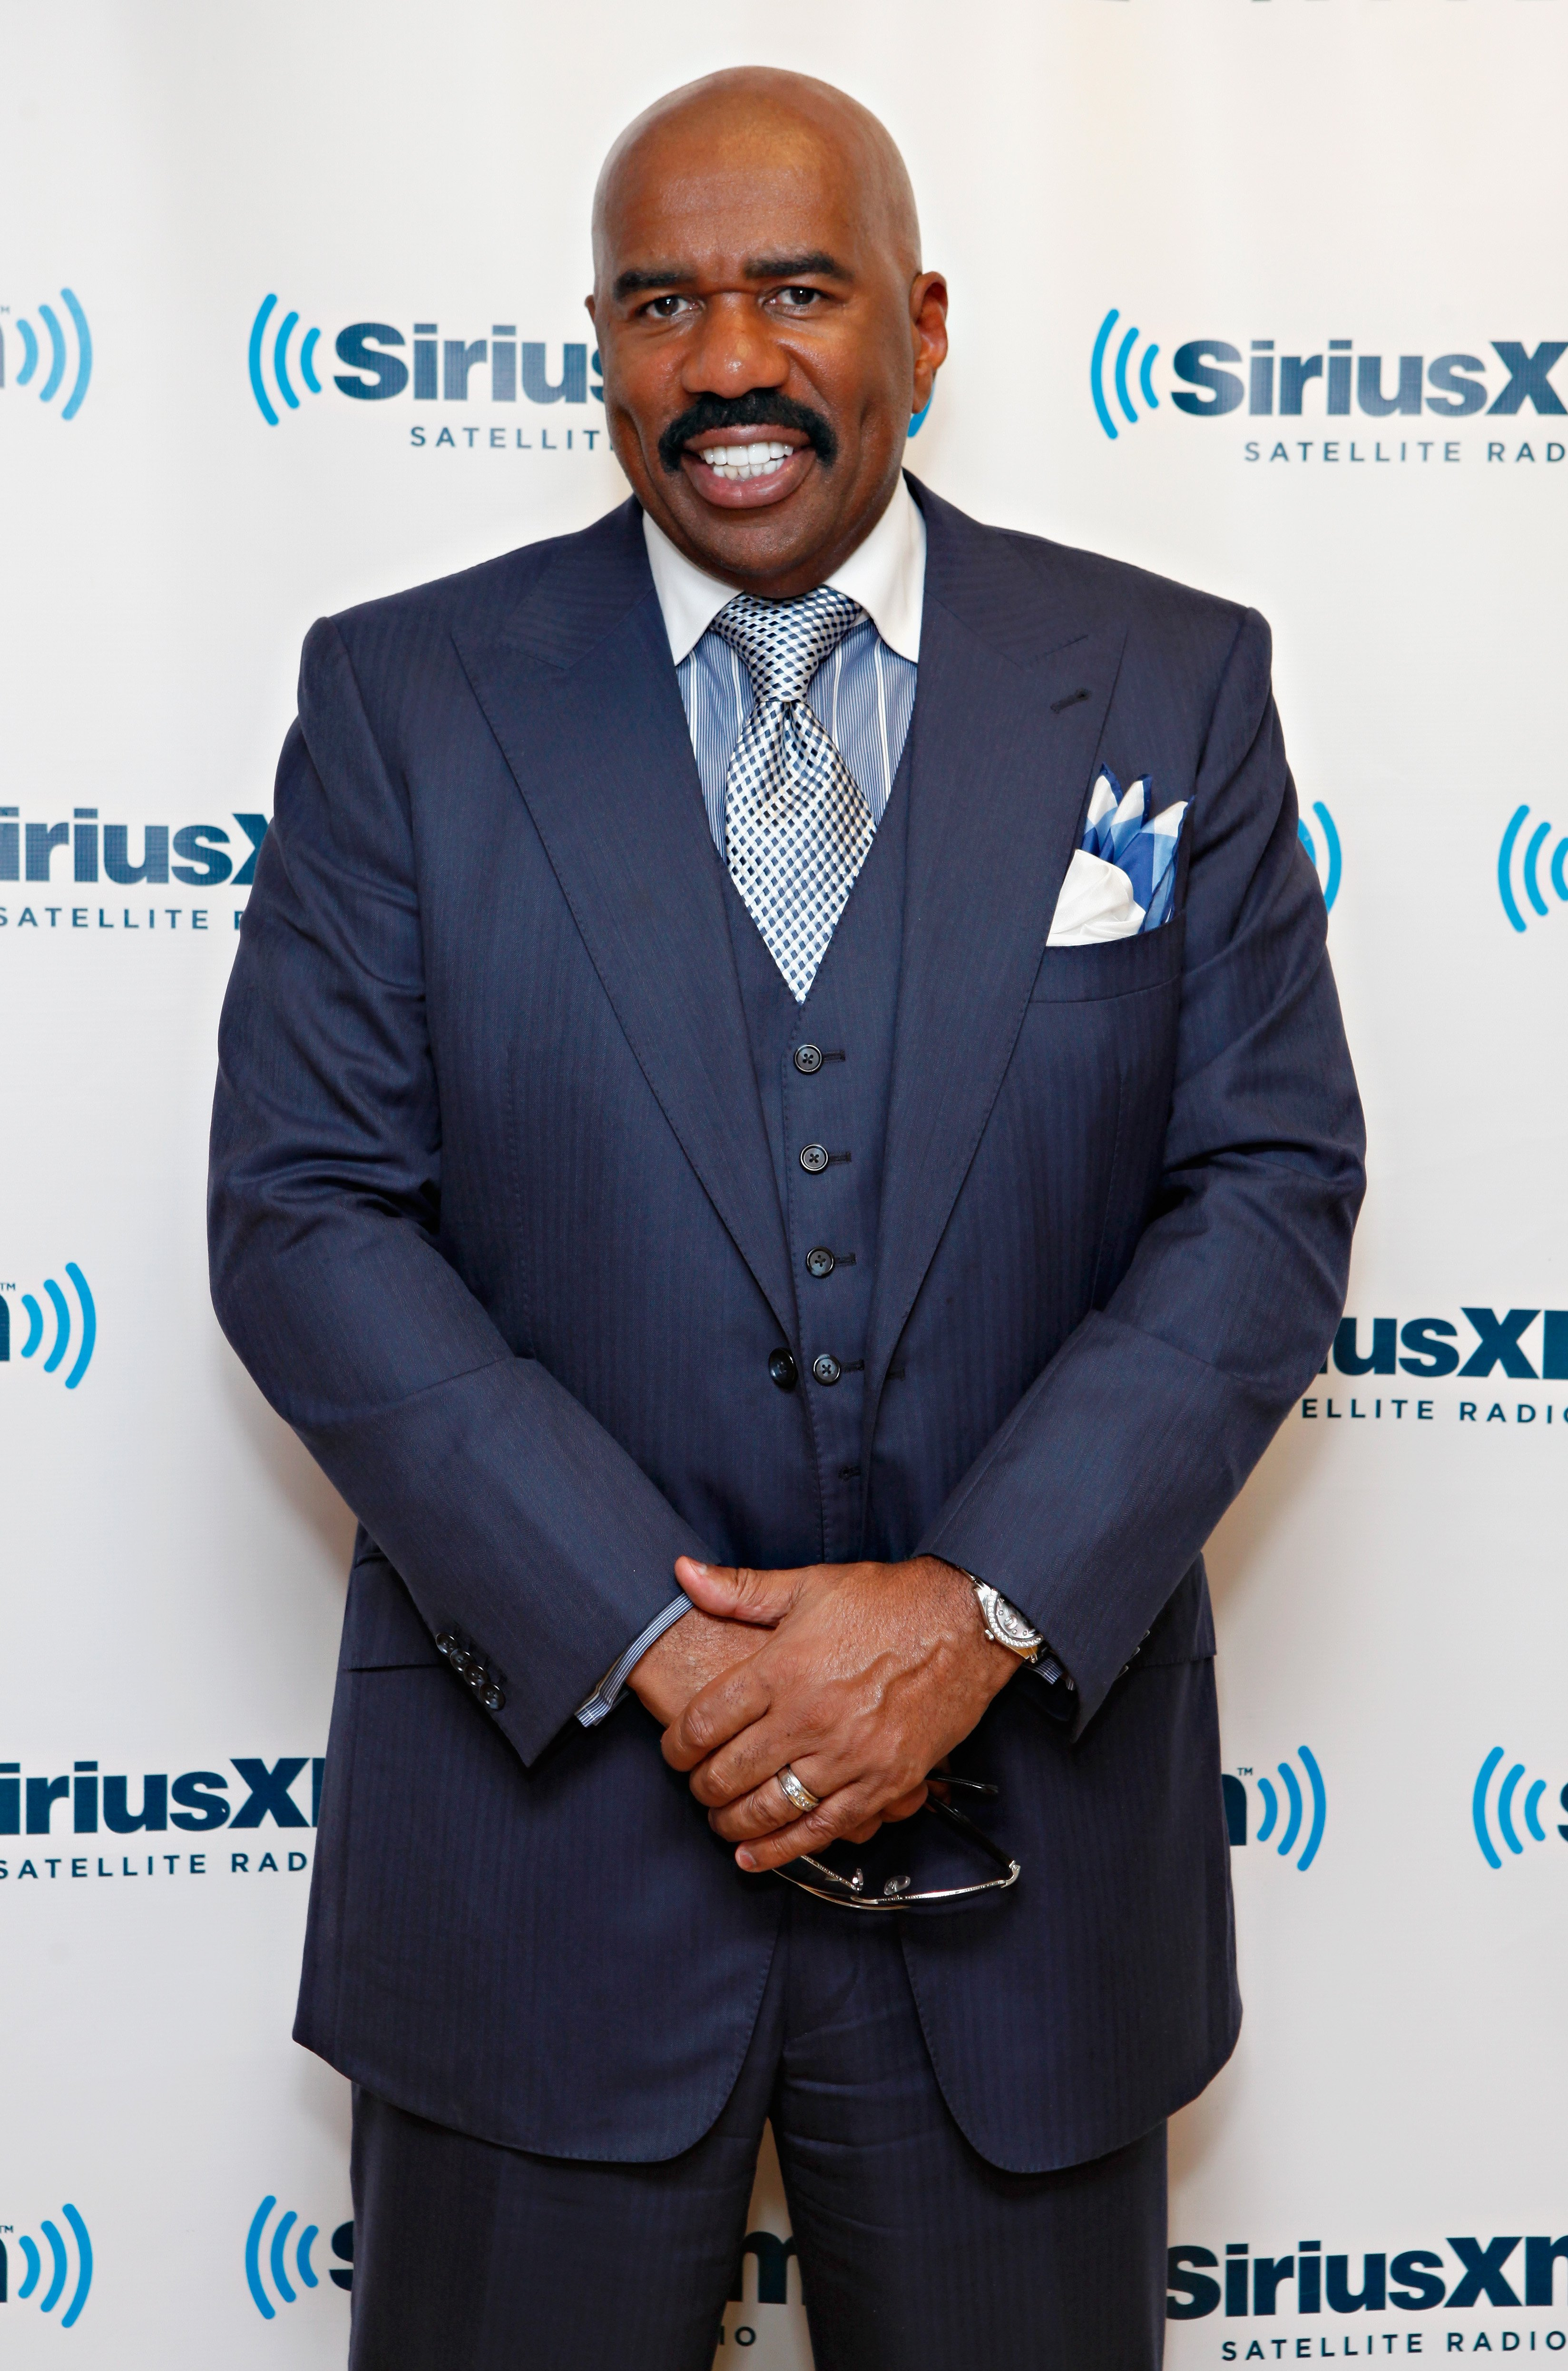 Steve Harvey visits the SiriusXM Studio in New York City on August 29, 2012 | Photo: Getty Images